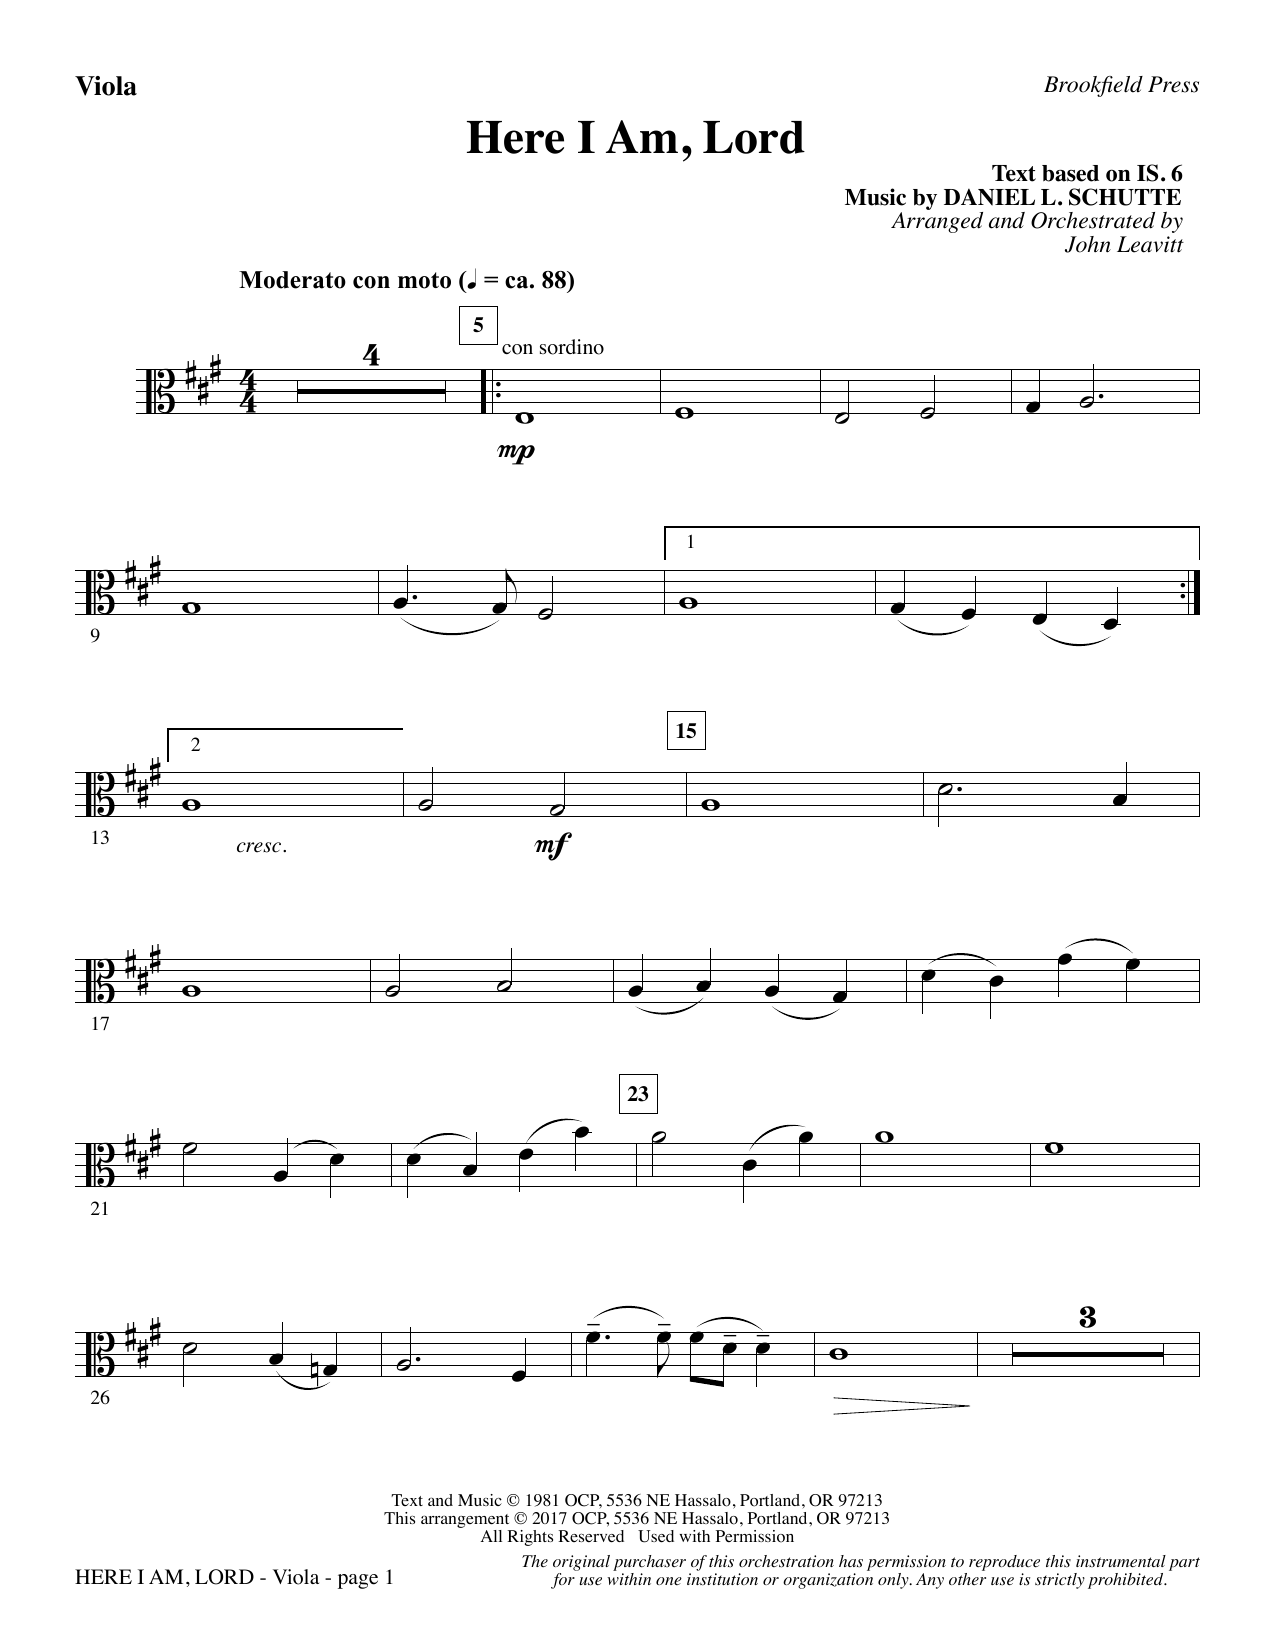 Here I Am, Lord - Viola atStanton's Sheet Music